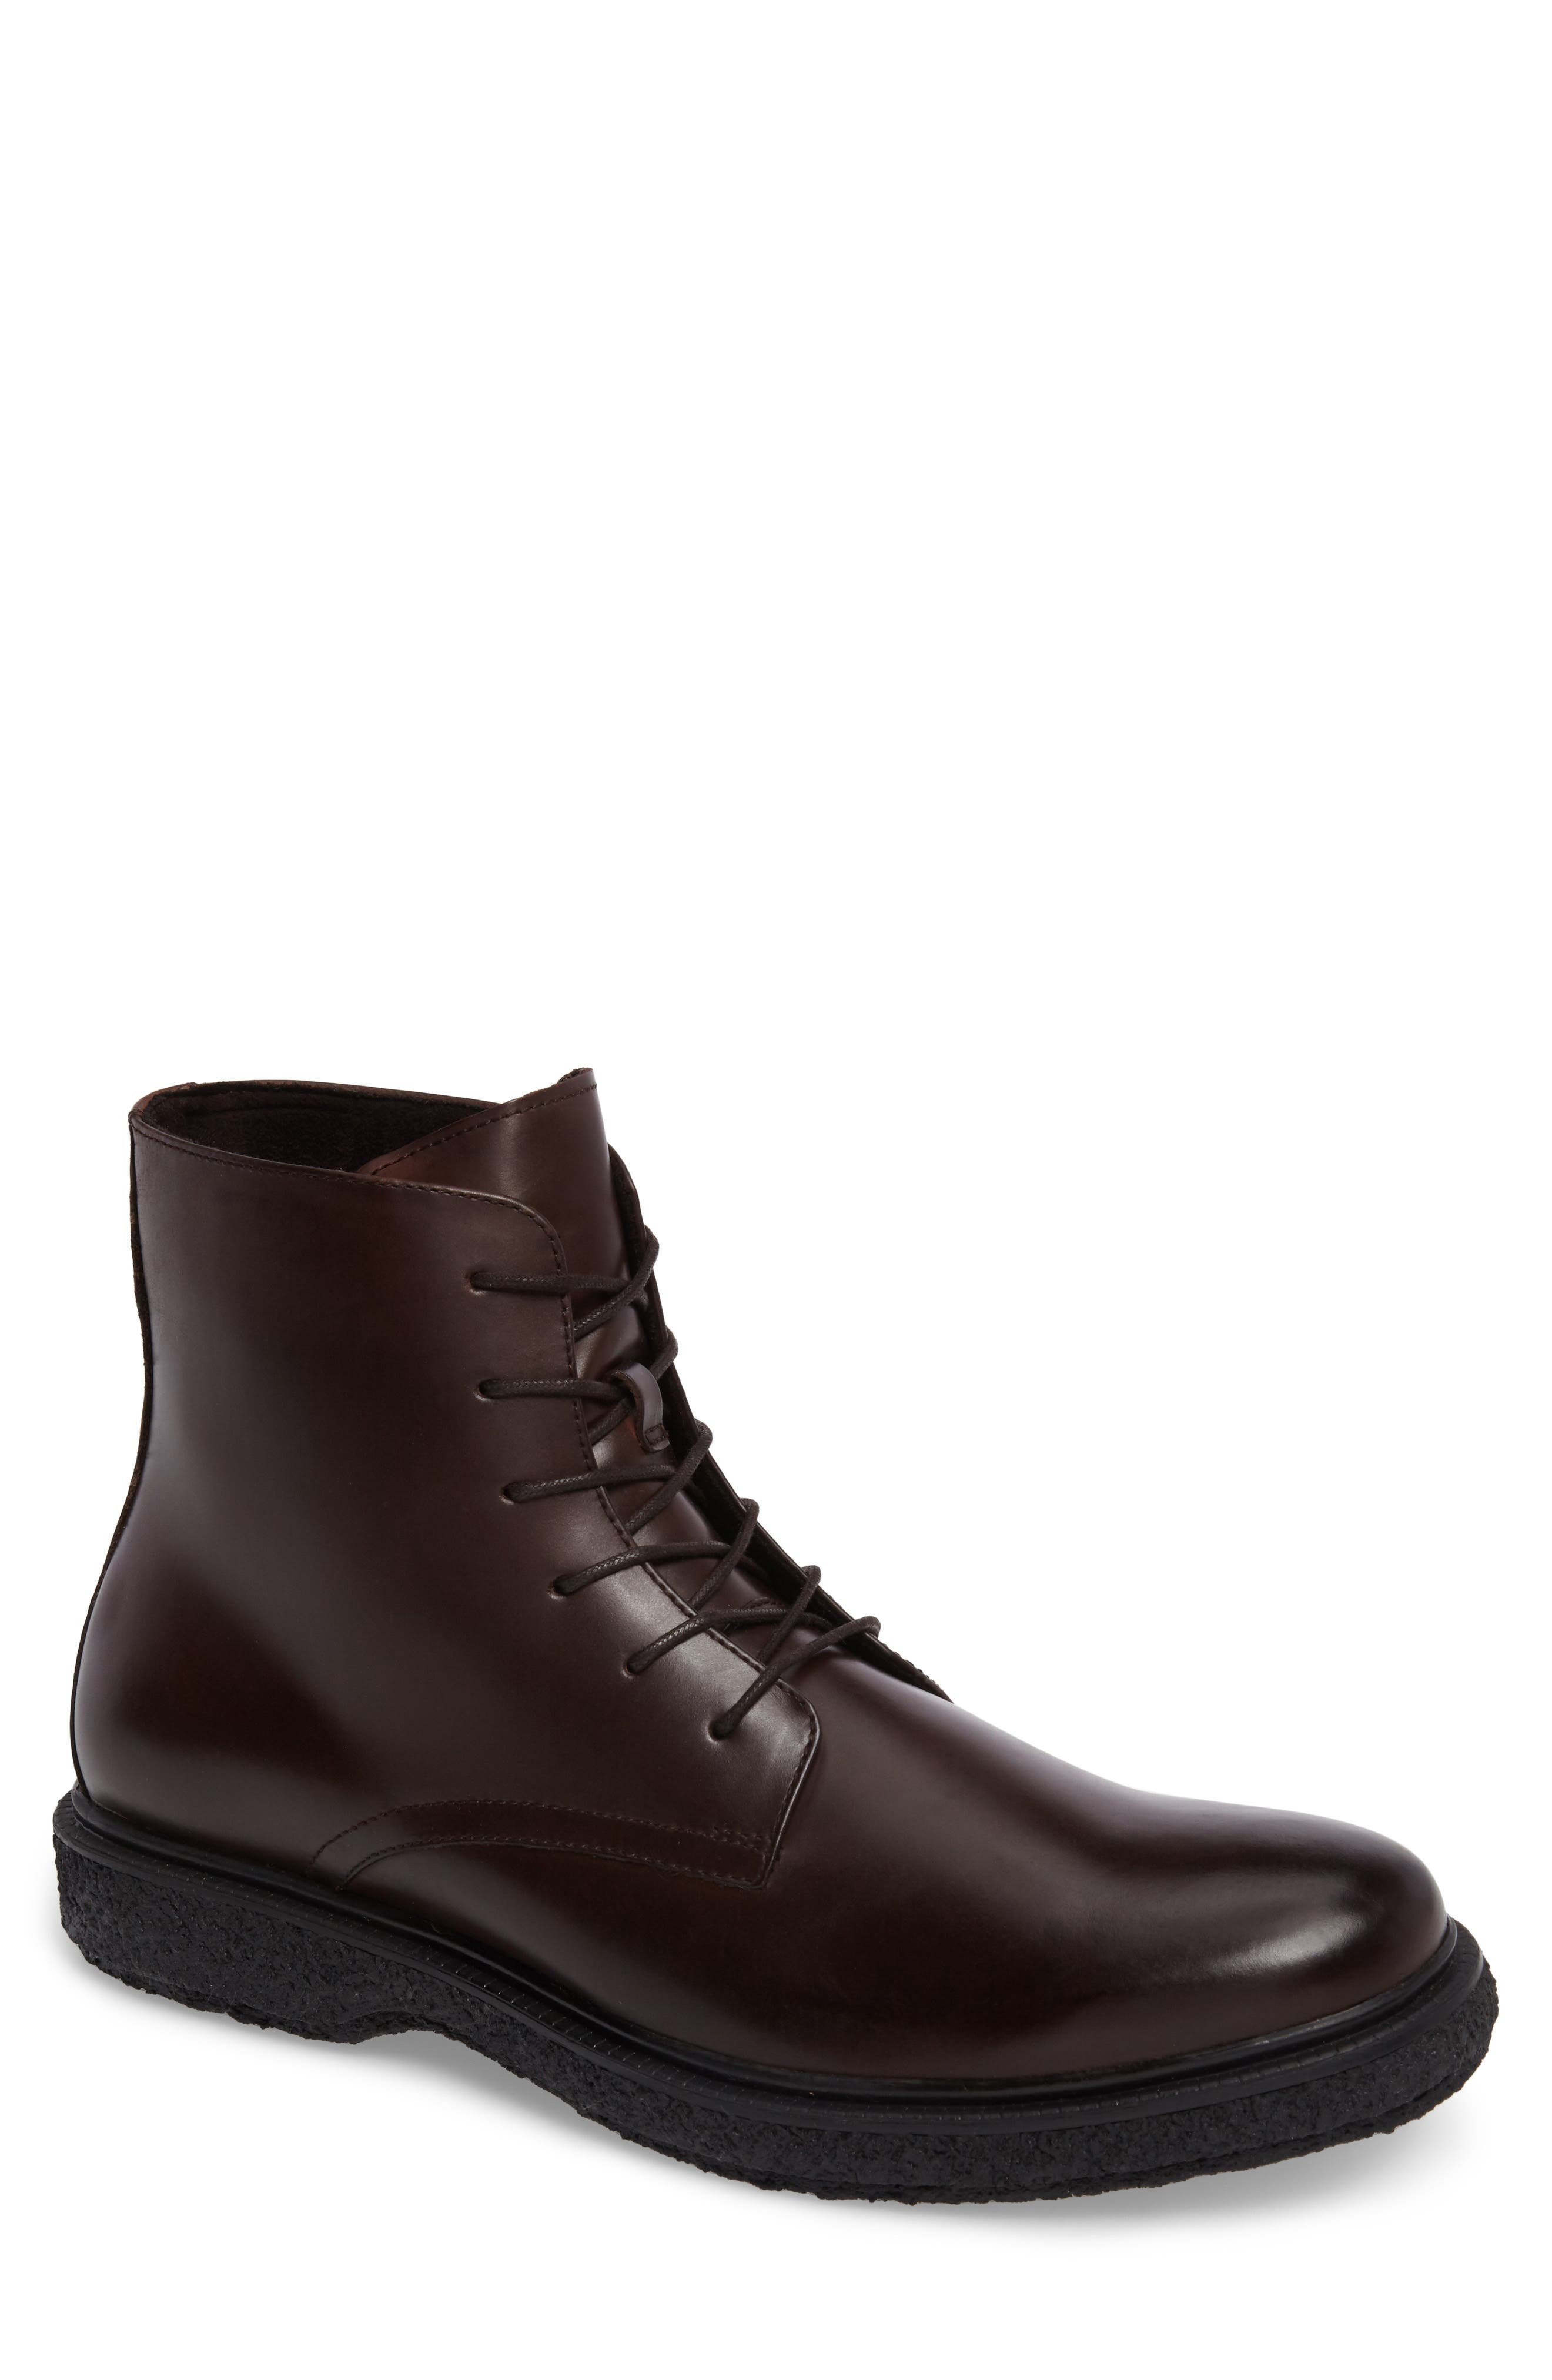 Plain Toe Boot,                         Main,                         color, Brown Leather